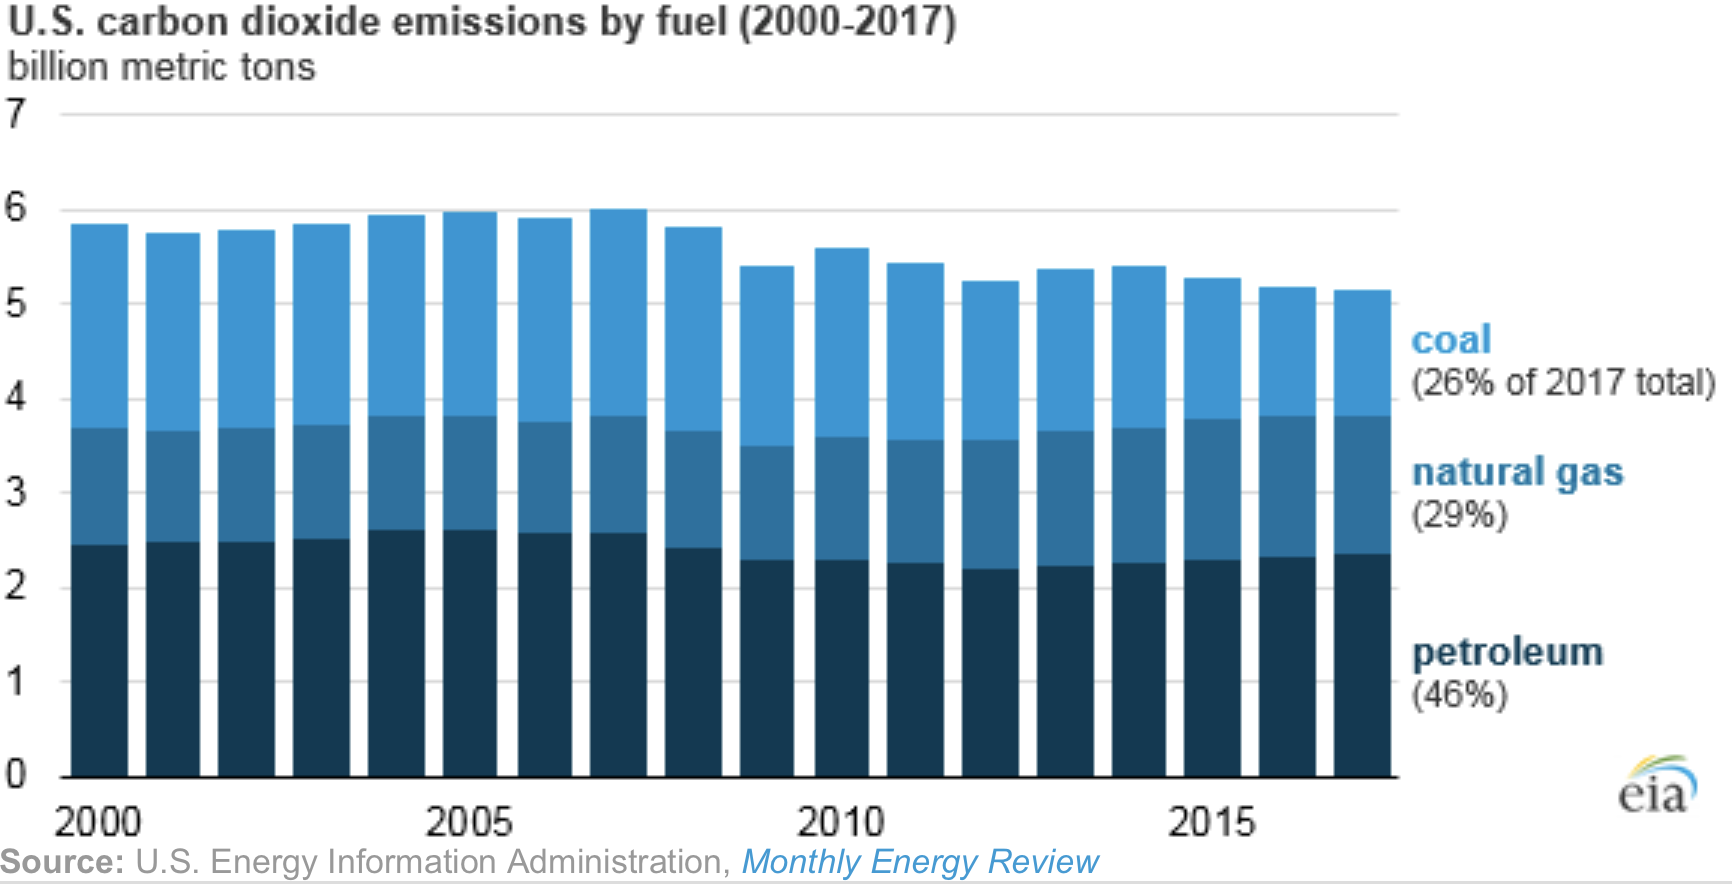 Oil And Gas Coyote Gulch Wildfire 250cc Wiring Diagram Us Energy Related Carbon Dioxide Co2 Emissions In 2017 Fell To 514 Billion Metric Tons 09 Lower Than Their 2016 Levels Coal Were The